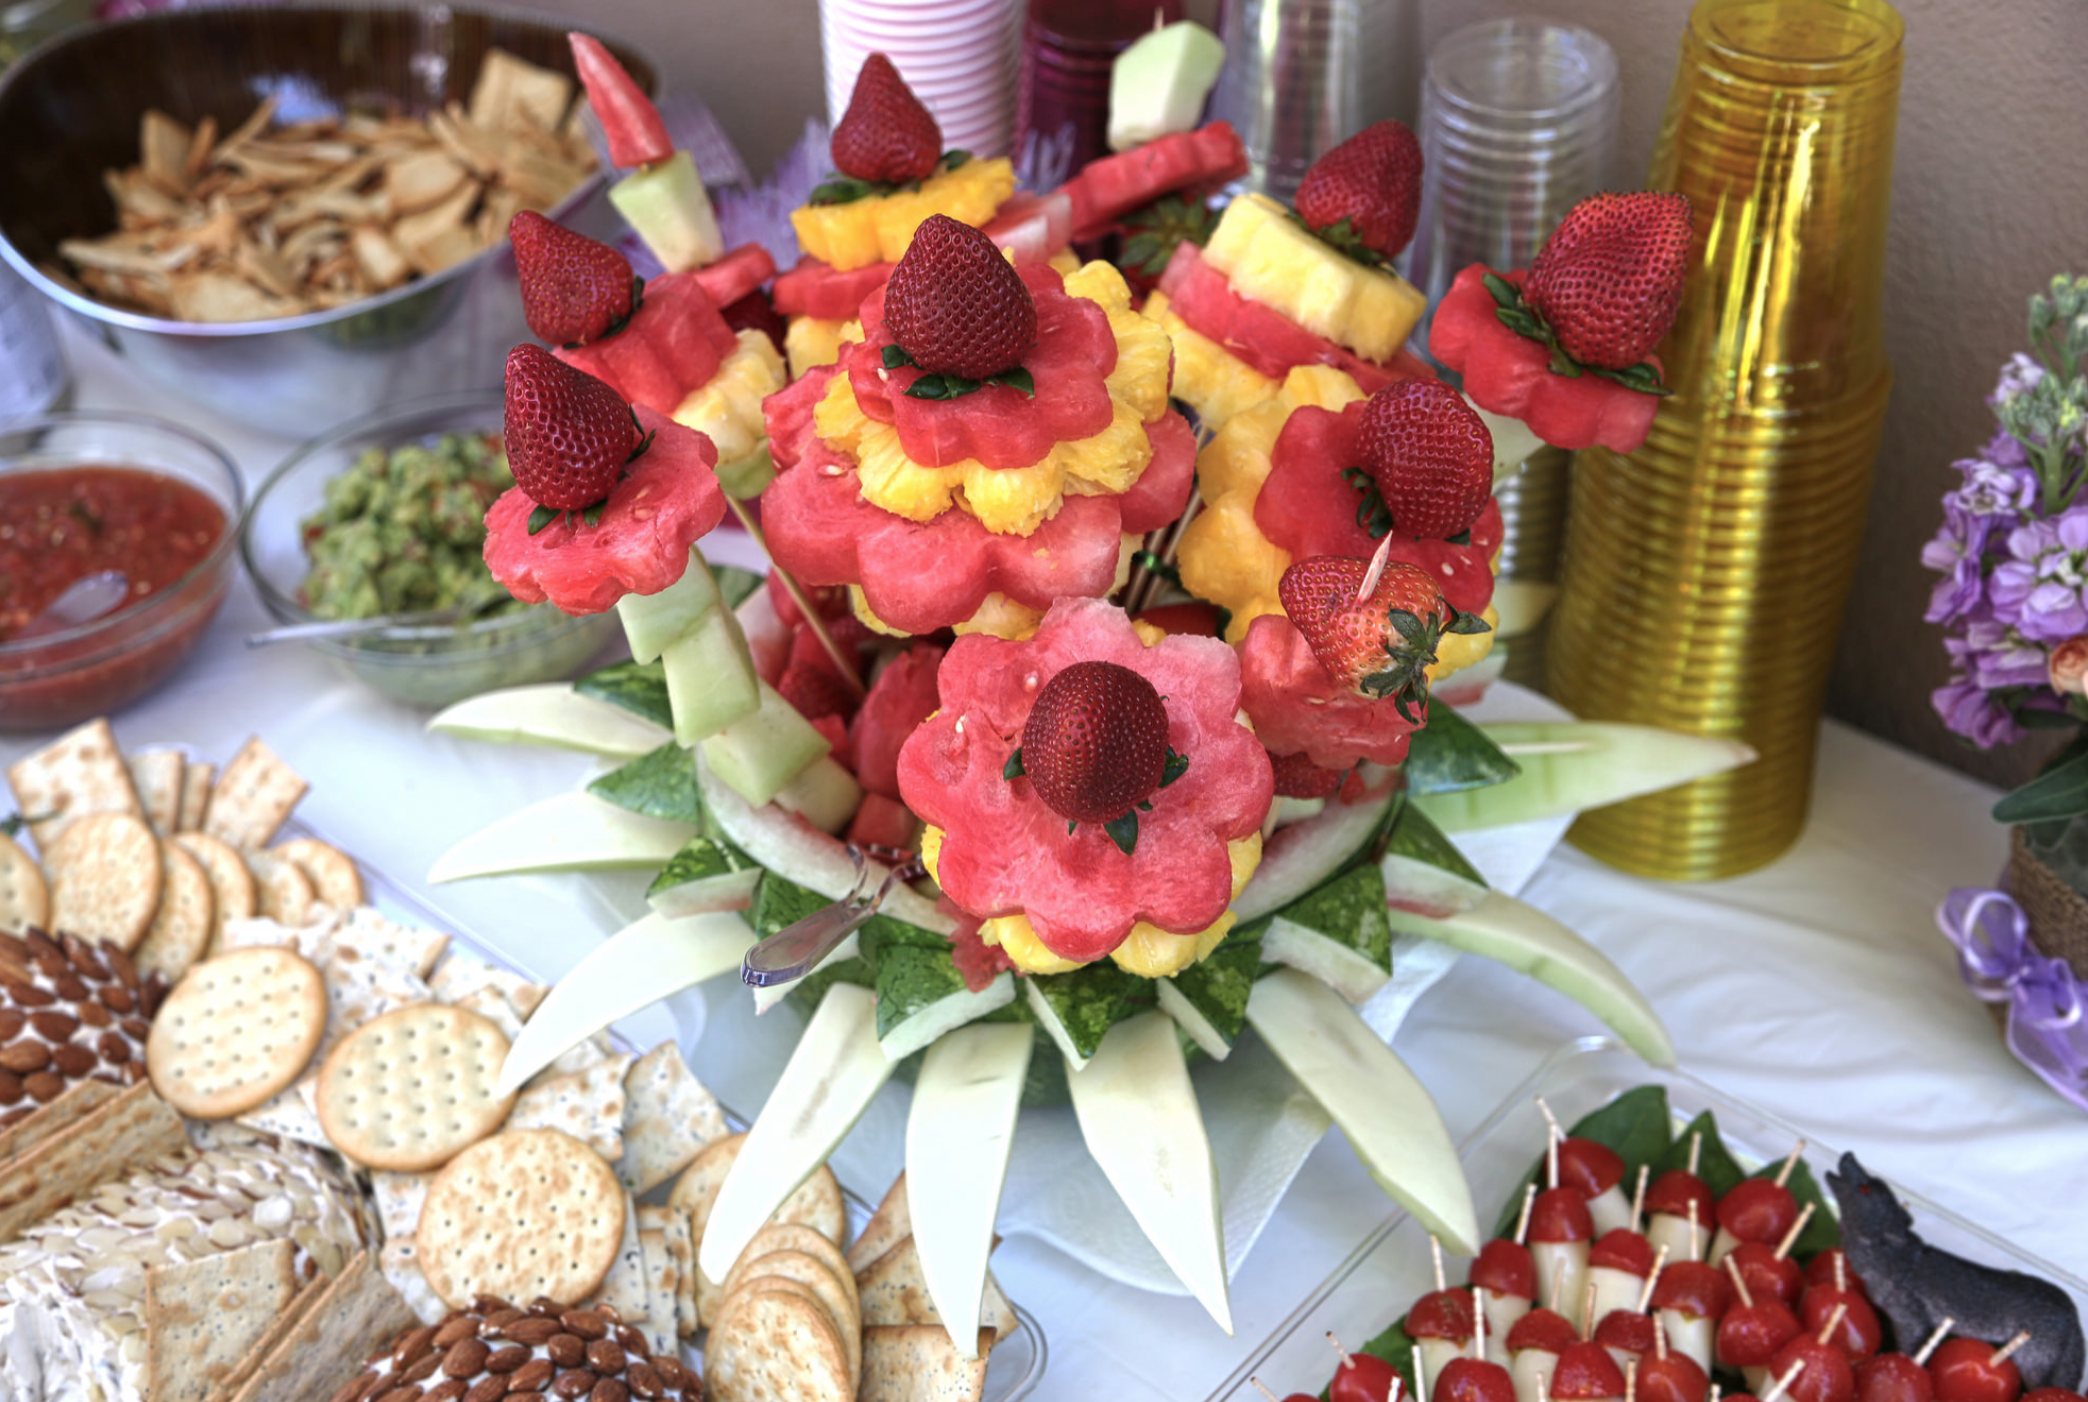 My first attempt at fruit presentation for a party.  Jointly prepared with Denisse Cobian.